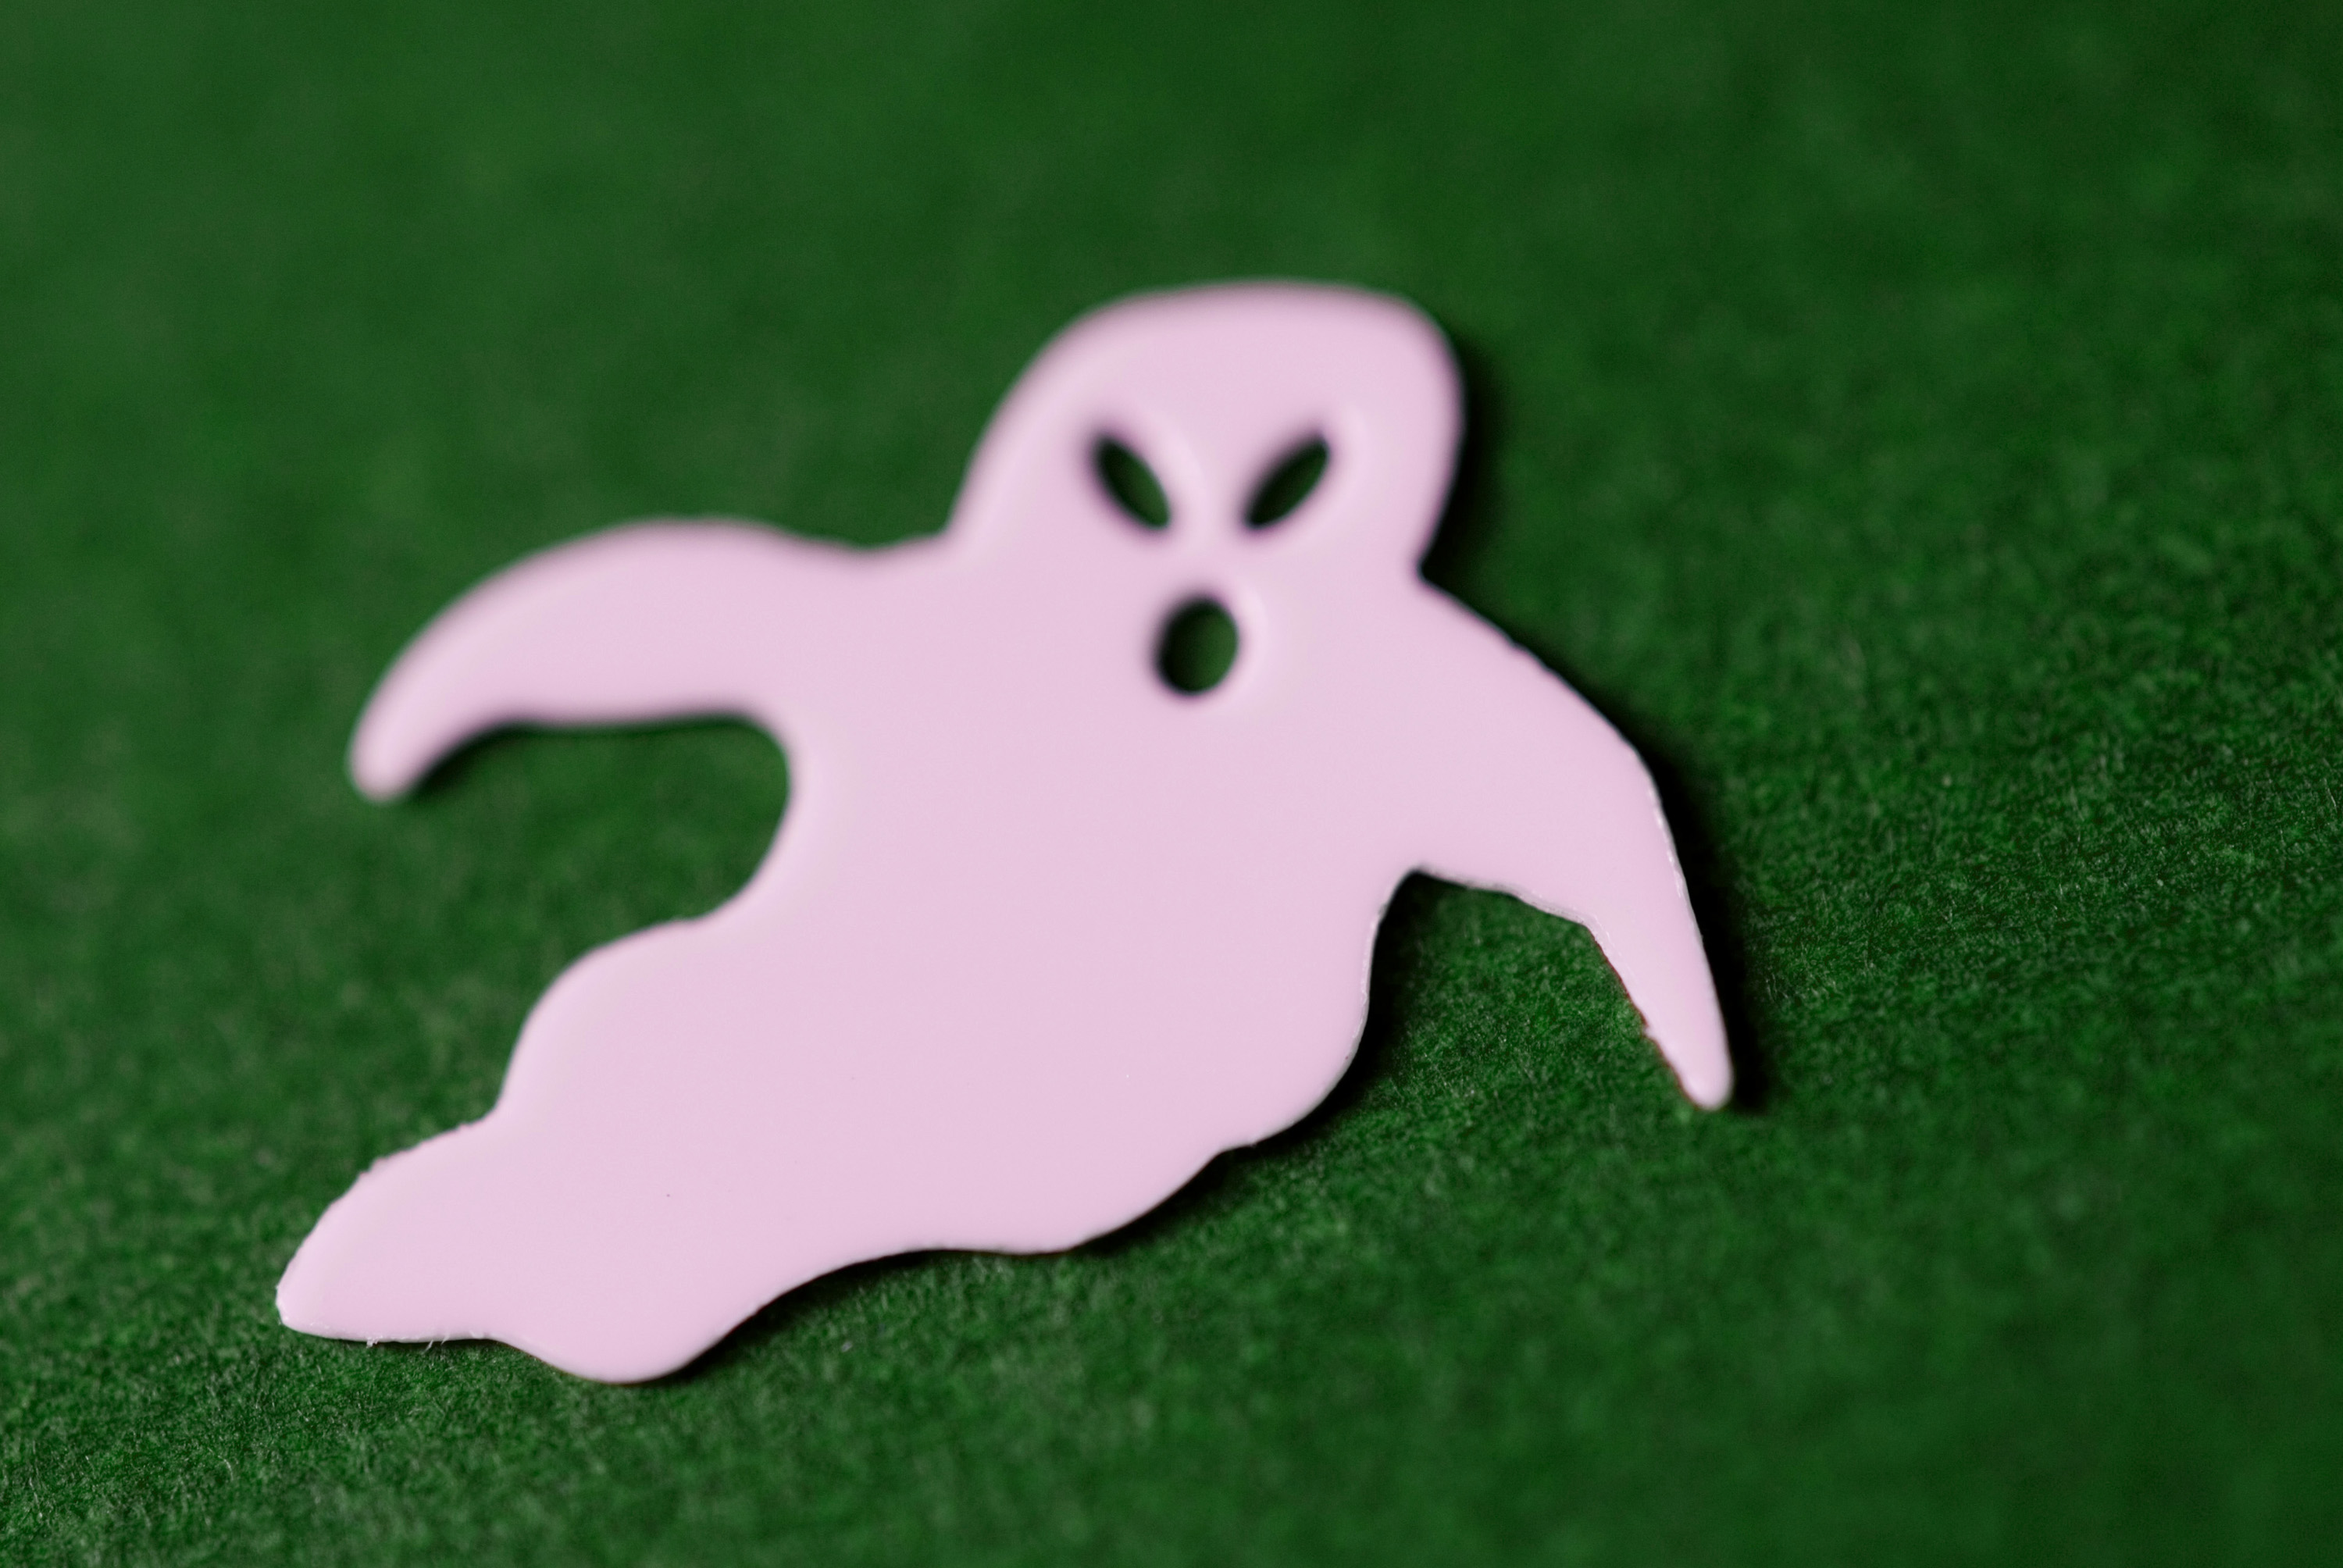 white ghost outline shape on green background